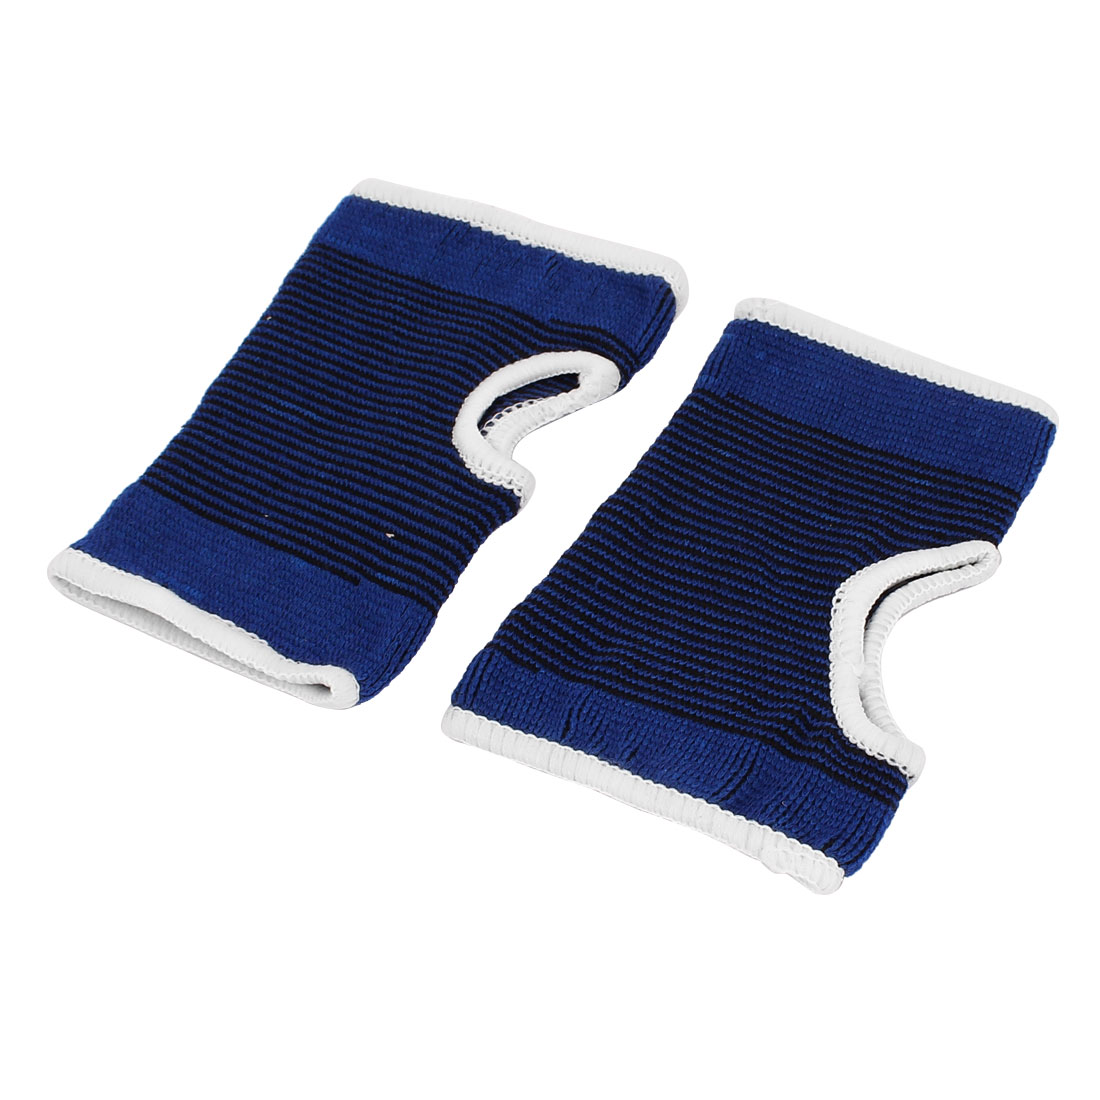 Athletic Volleyball Band Wrist Palm Support Protector Dark Blue Black Pair